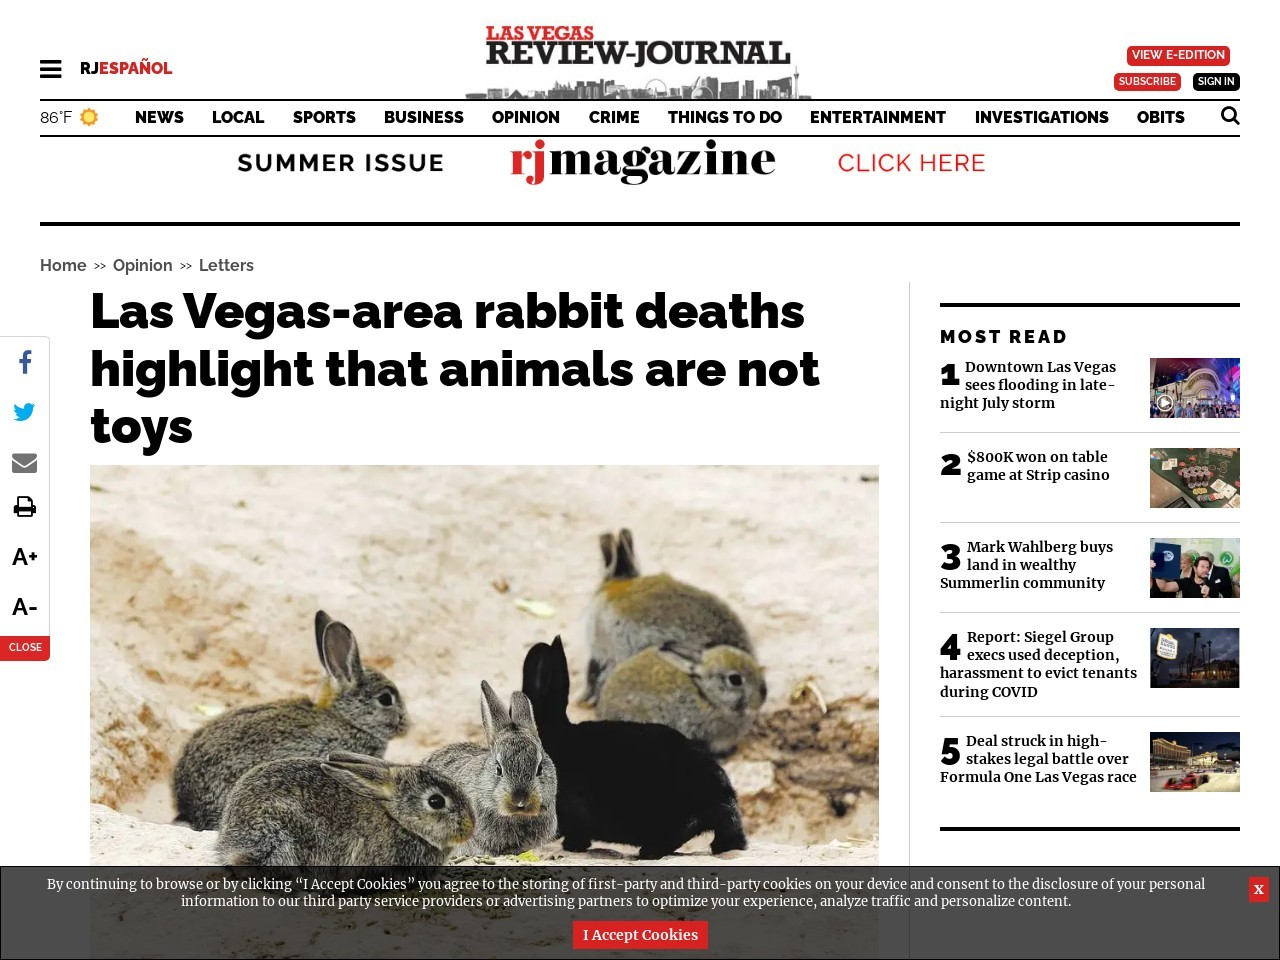 Las Vegas-area rabbit deaths highlight that animals are not toys